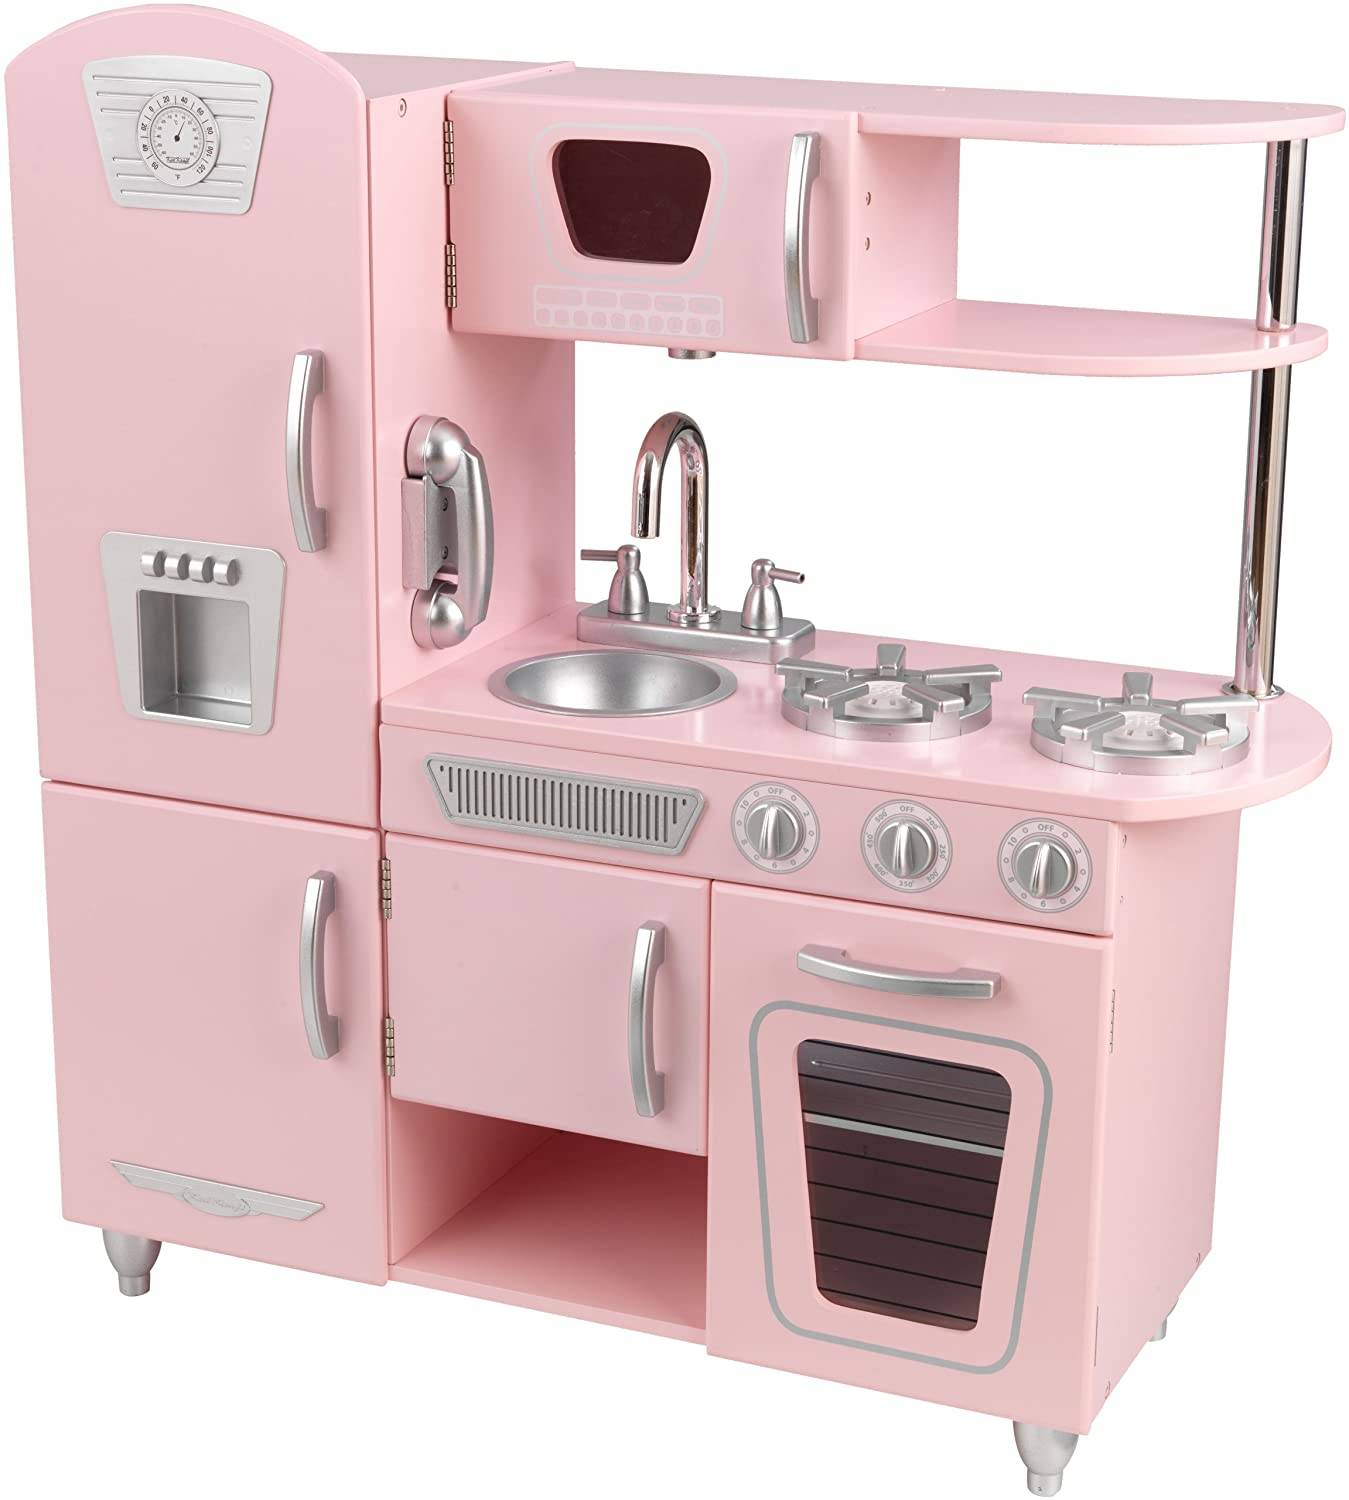 Pink Kitchen Amazoncom Kidkraft Vintage Kitchen In Pink Toys Games